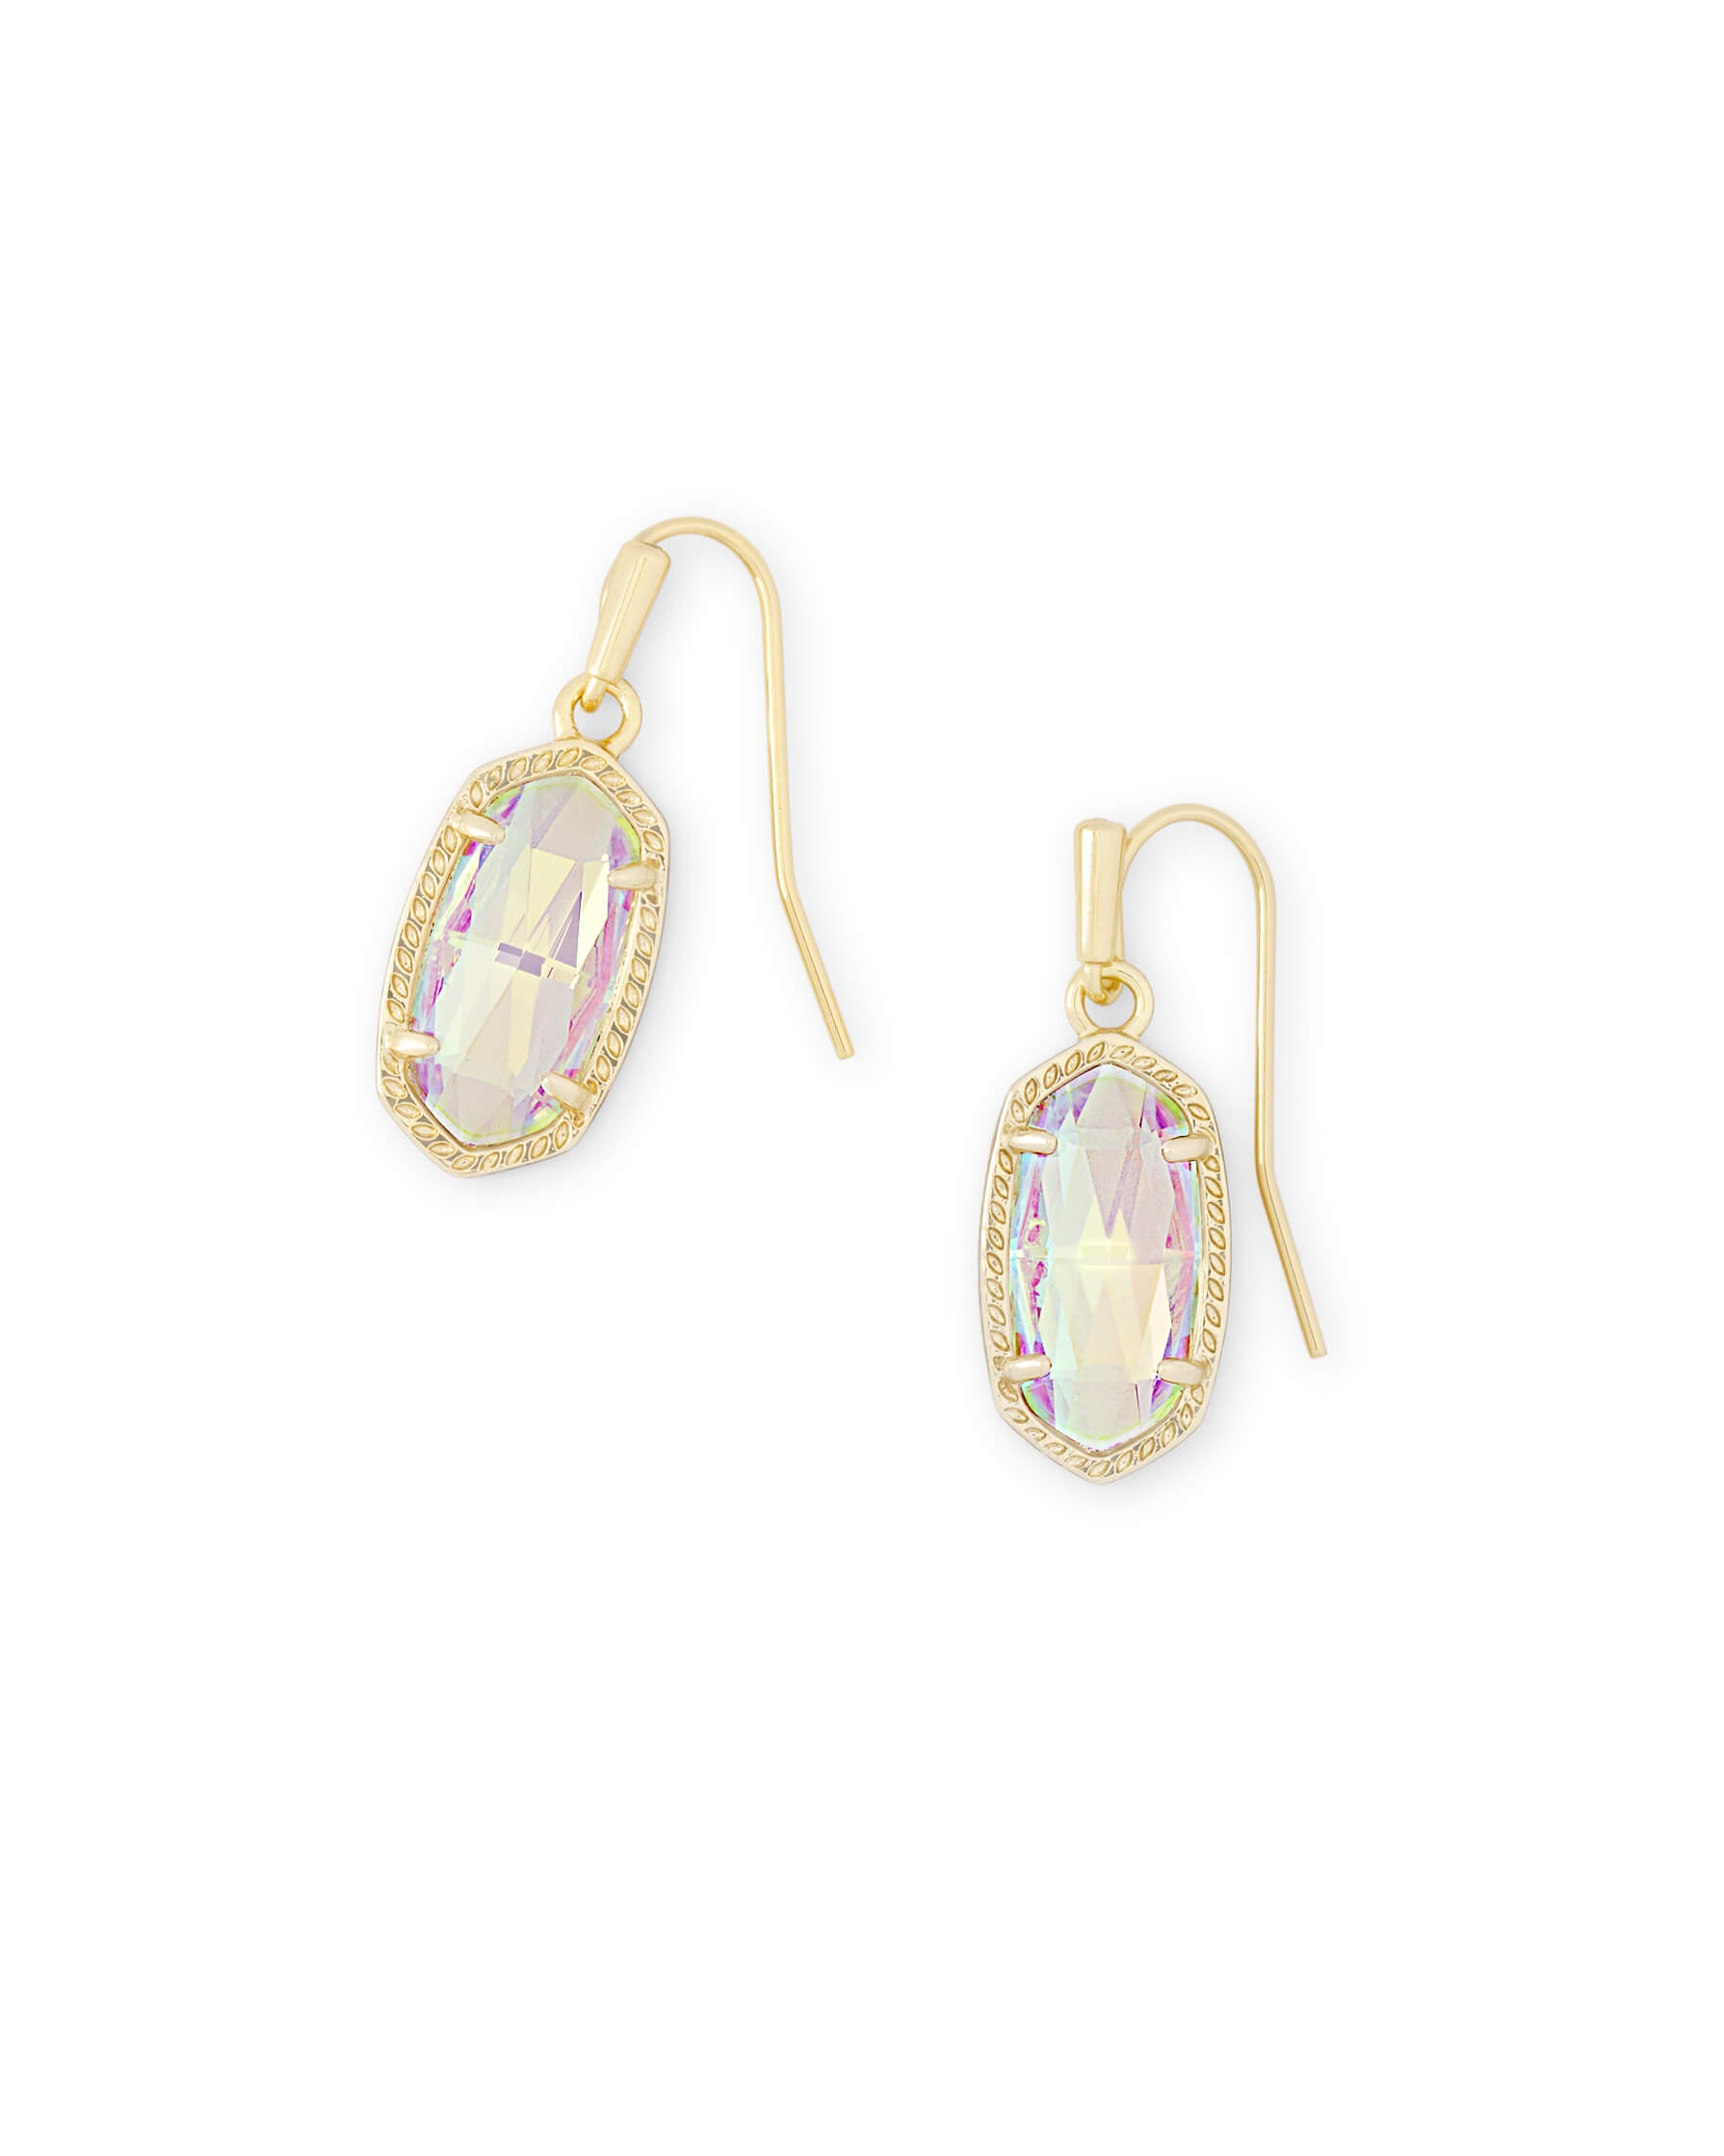 Lee Drop Earrings in Gold